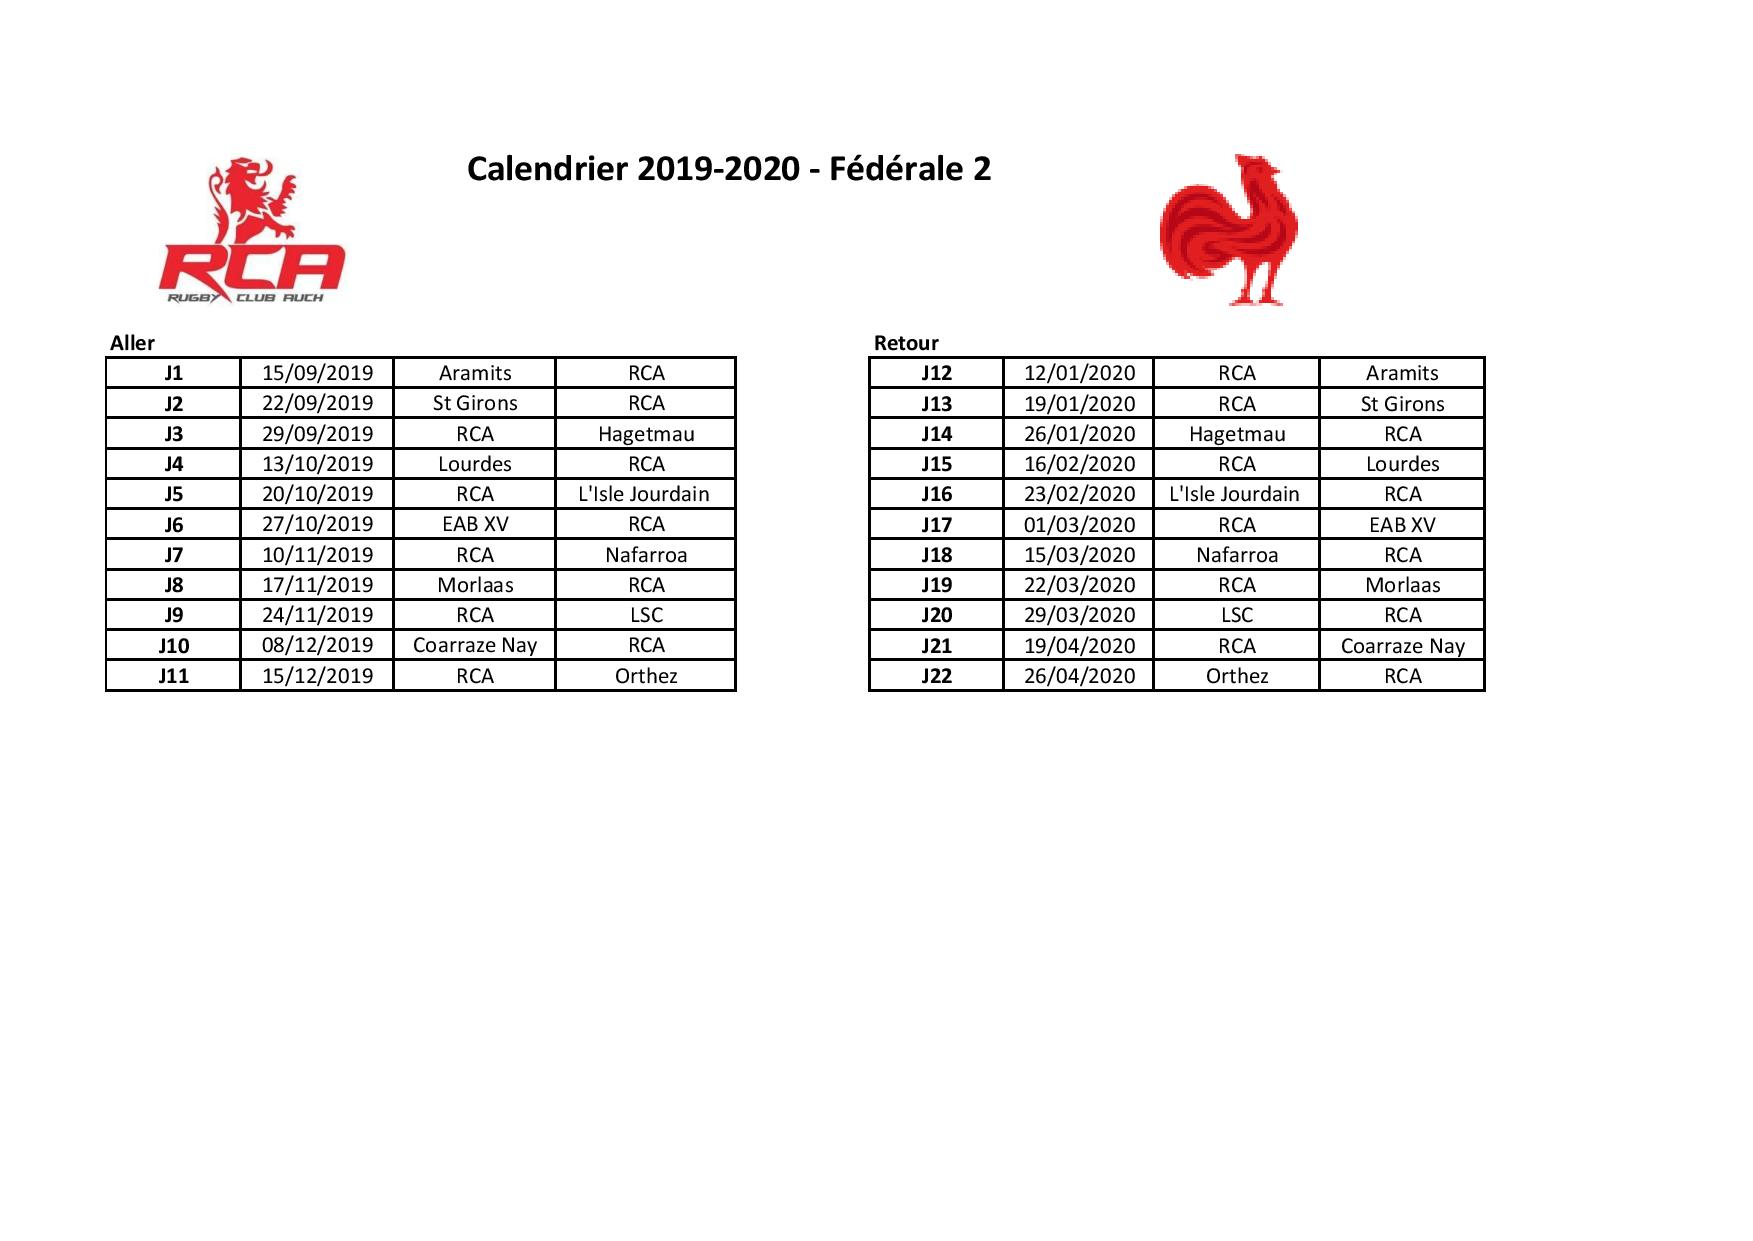 Calendrier Federale 2 2020 2019.Le Calendrier 2019 2020 Est Arrive Rc Auch Rugby